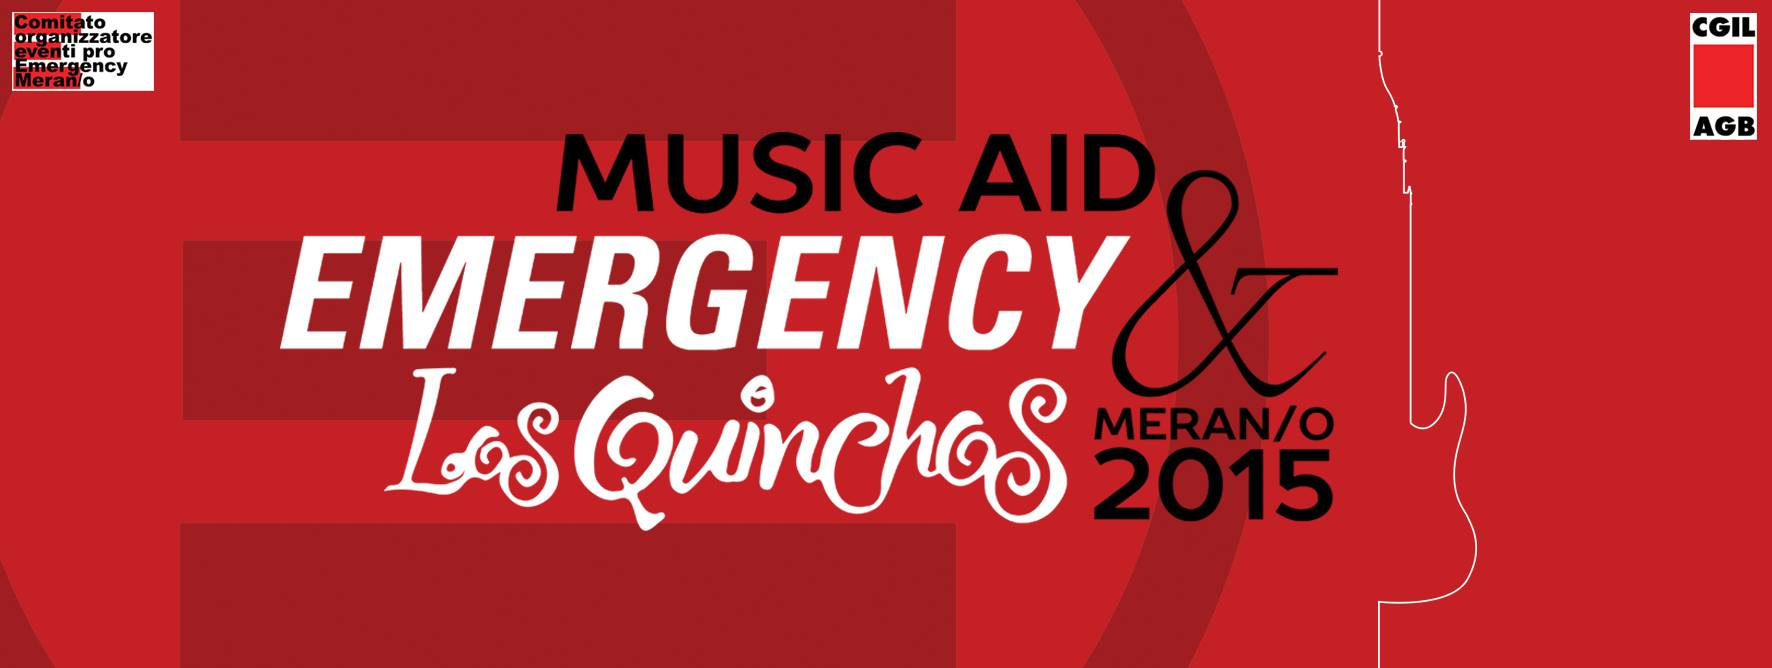 Music_AID_Emergency_and_Los_Quinchos_2015